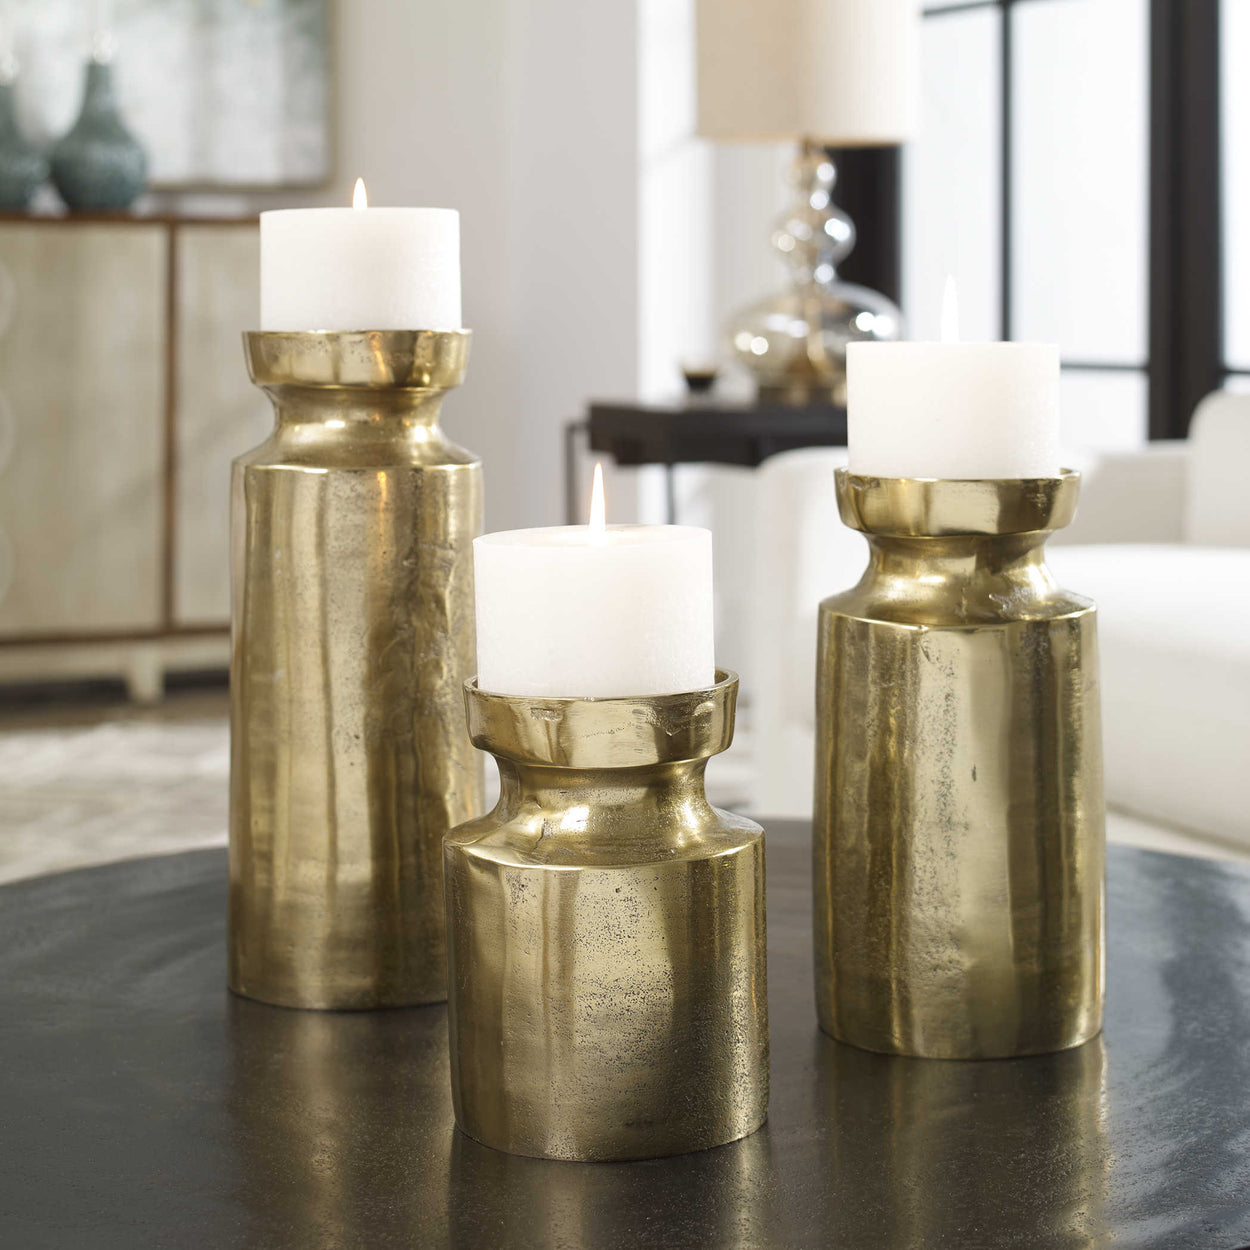 "Set of three, textured cast aluminum candleholders feature an antiqued brass finish and completed with three 4""x 4"" white candles. Sizes: Sm-5x7x5, Med-5x10x5, Lg-5x13x5"